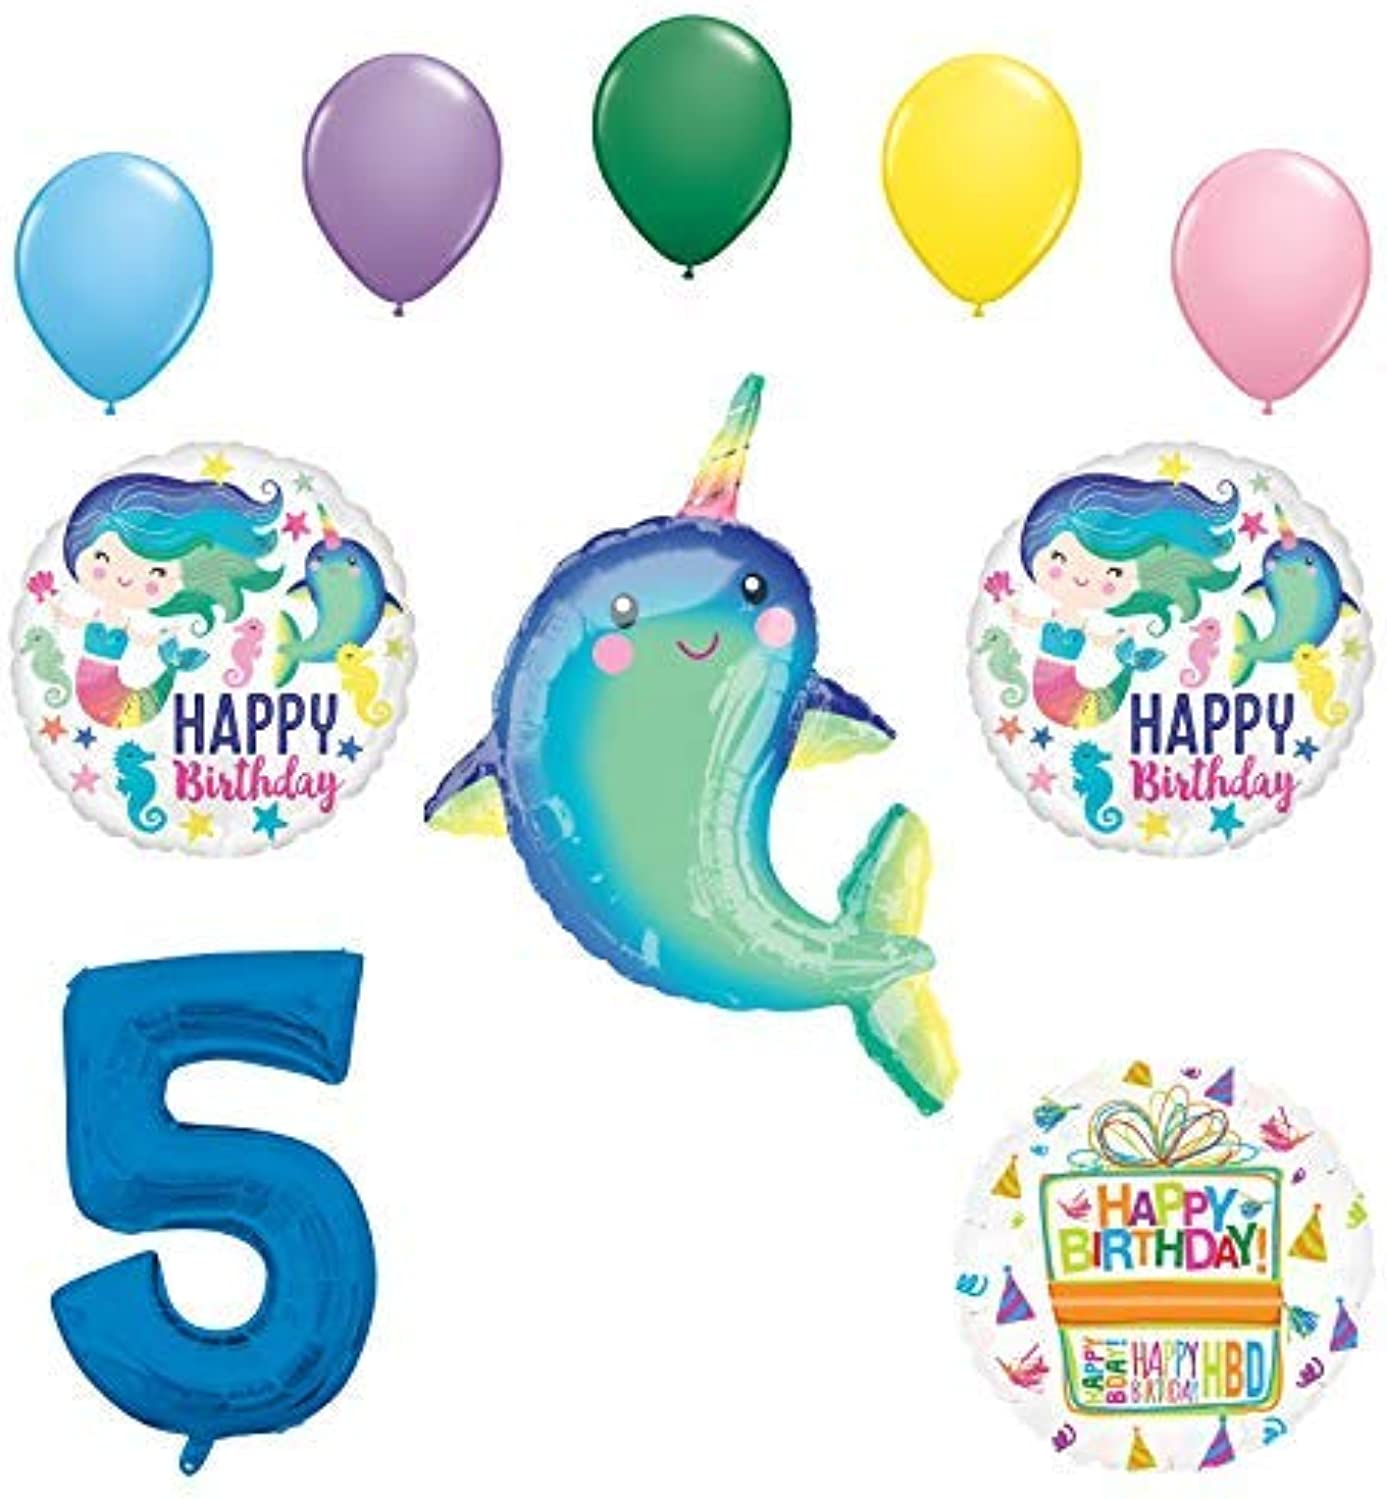 Mayflower Products Narwhal Party Supplies 5th Birthday Mermaid Balloon Bouquet Decorations